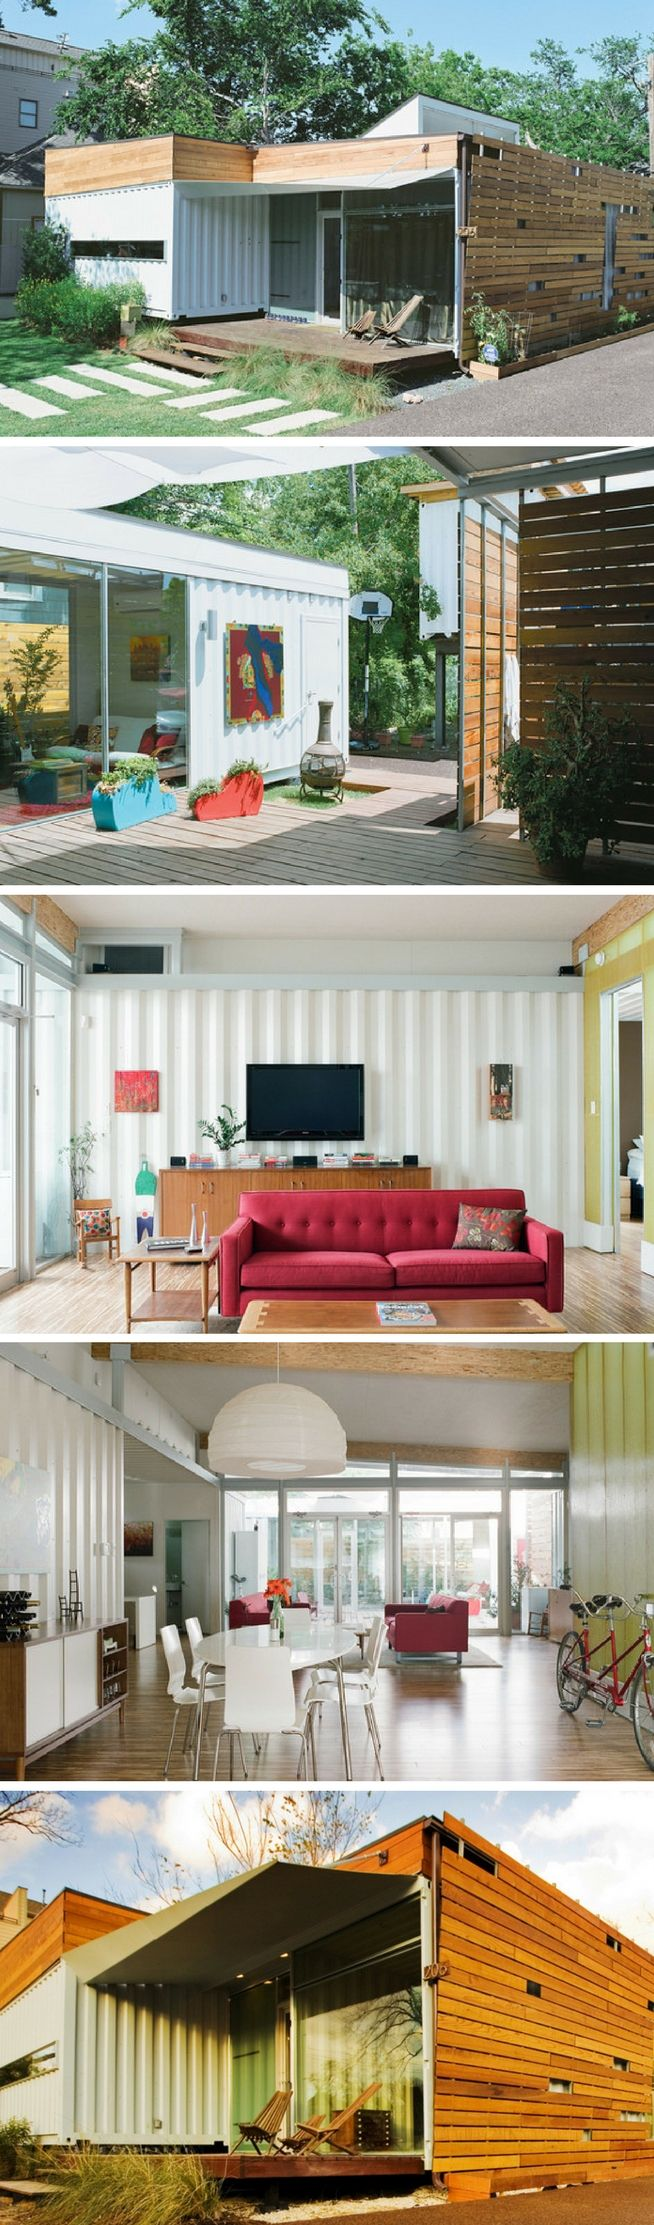 670 best loft, container house, industrial - my style of living